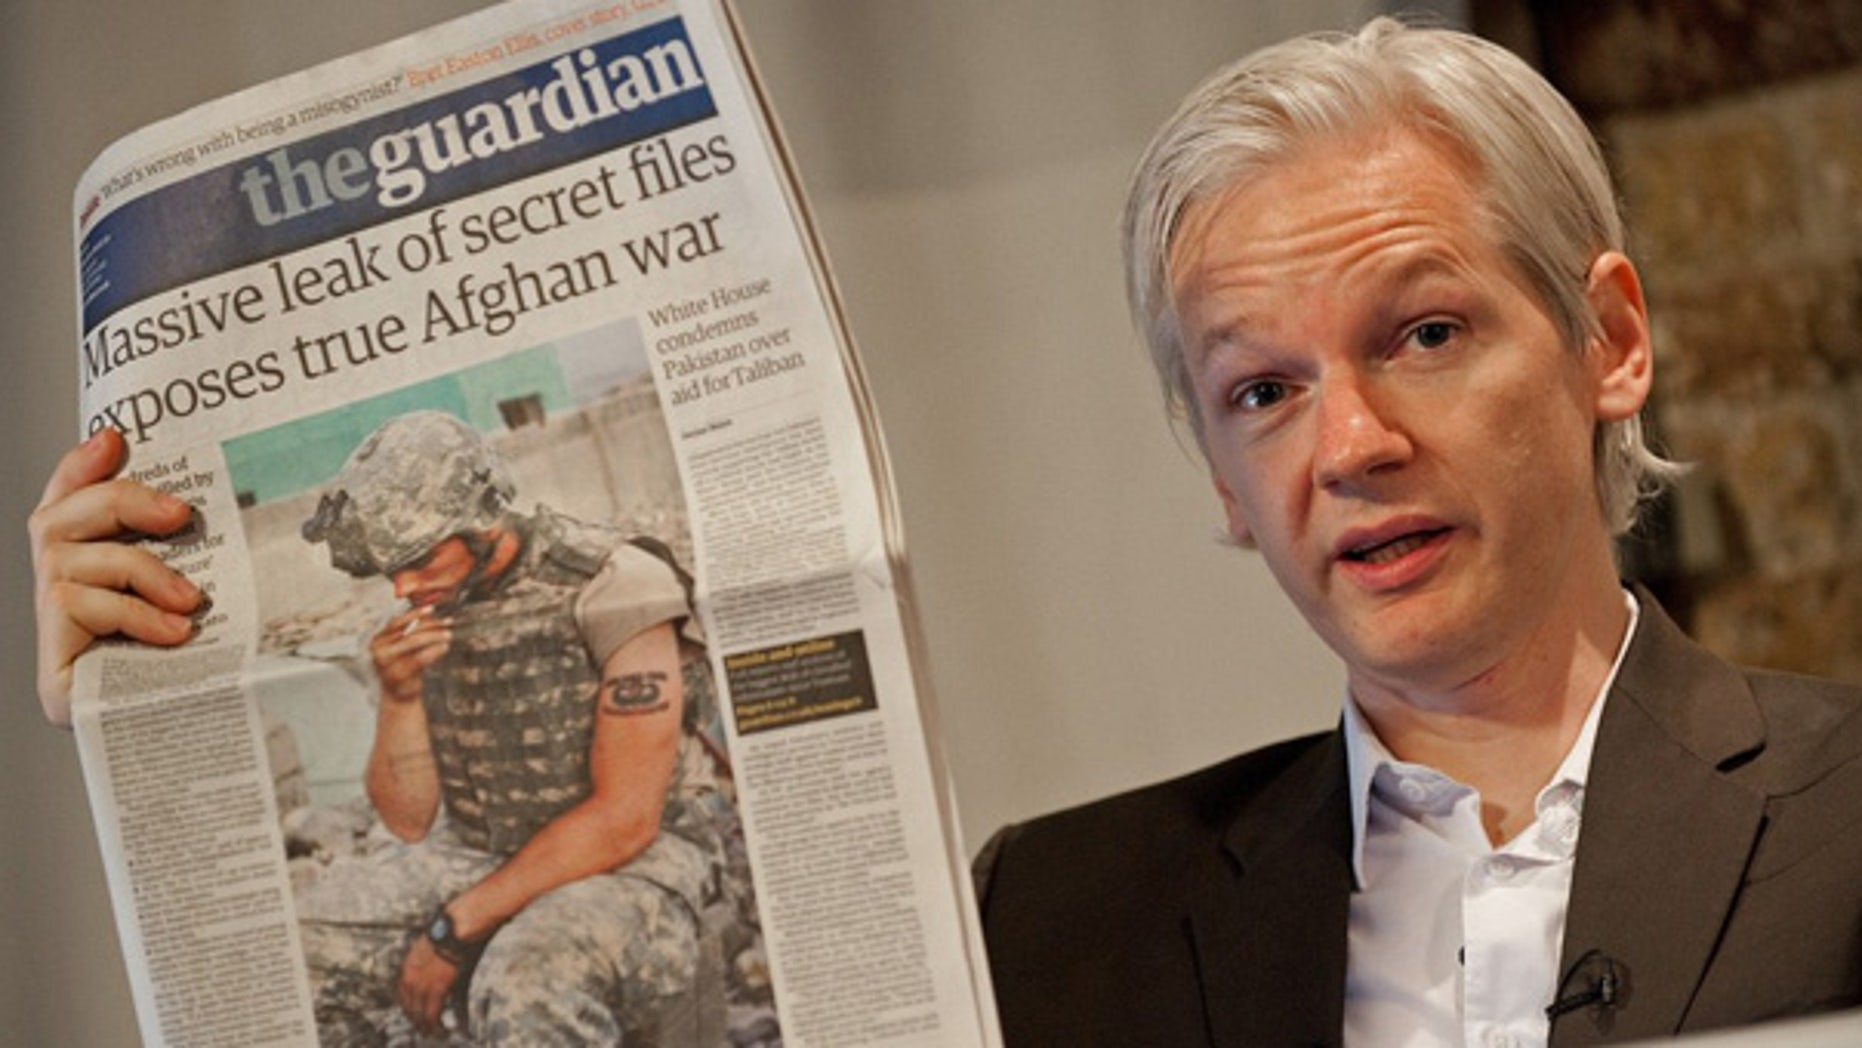 July 26: WikiLeaks founder Julian Assange holds up a copy of Britain's Guardian newspaper during a press conference in London.